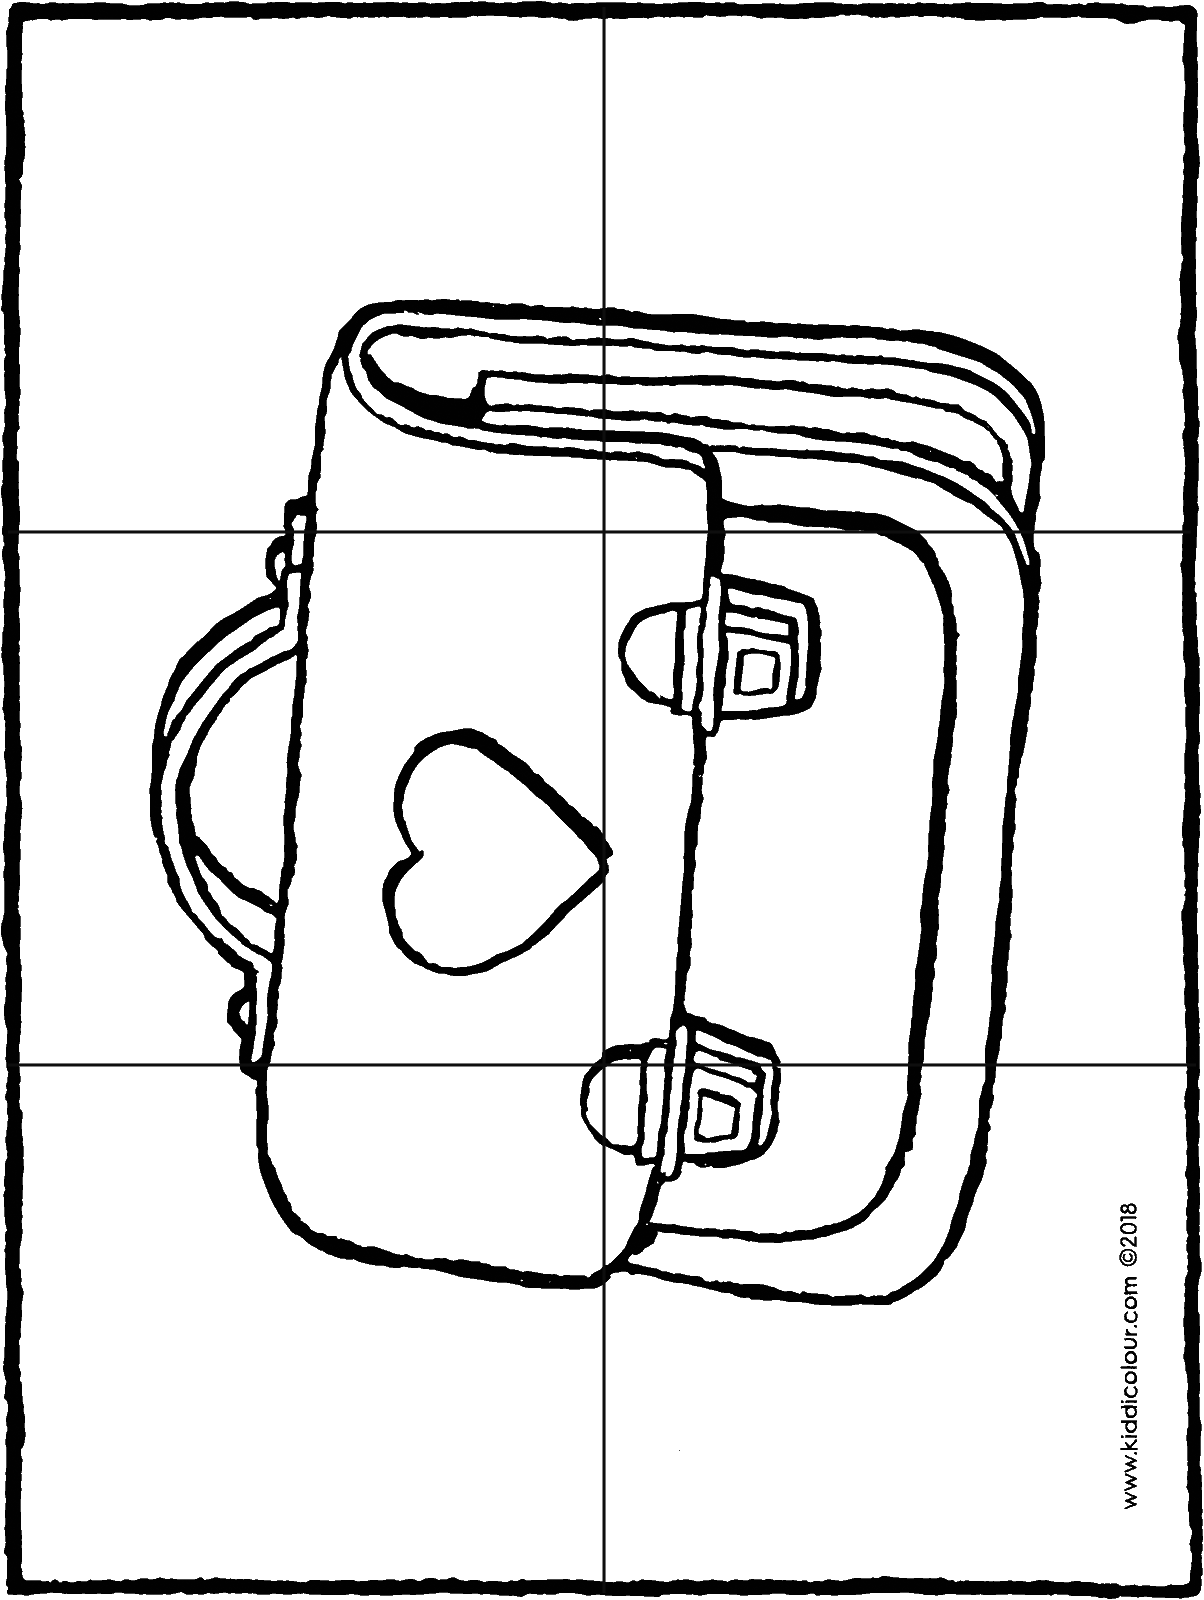 6-piece school bag puzzle colouring page drawing picture 01H